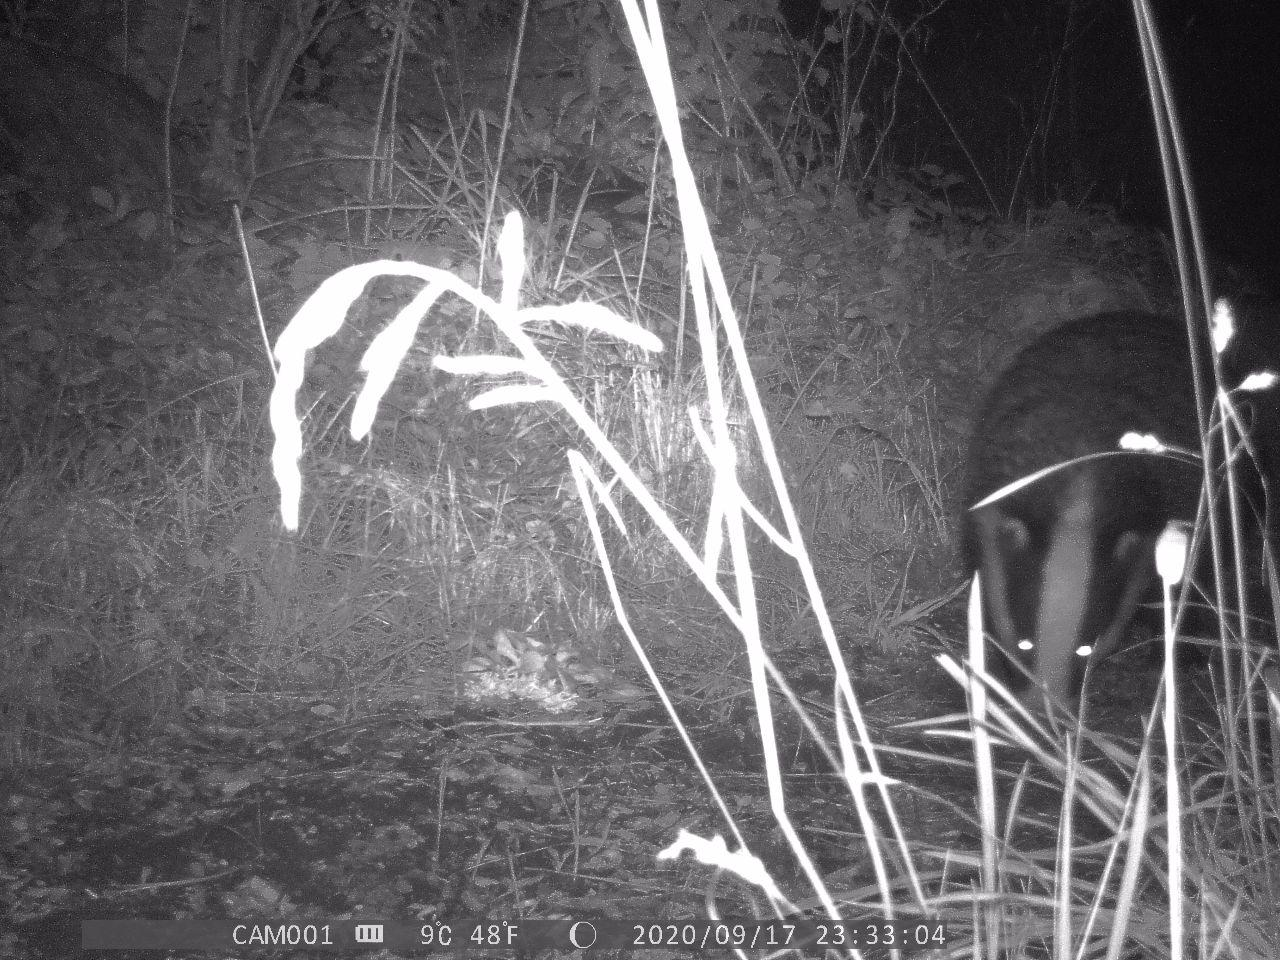 Badger enters scene right. Eyes glowing with the reflection of the camera's light